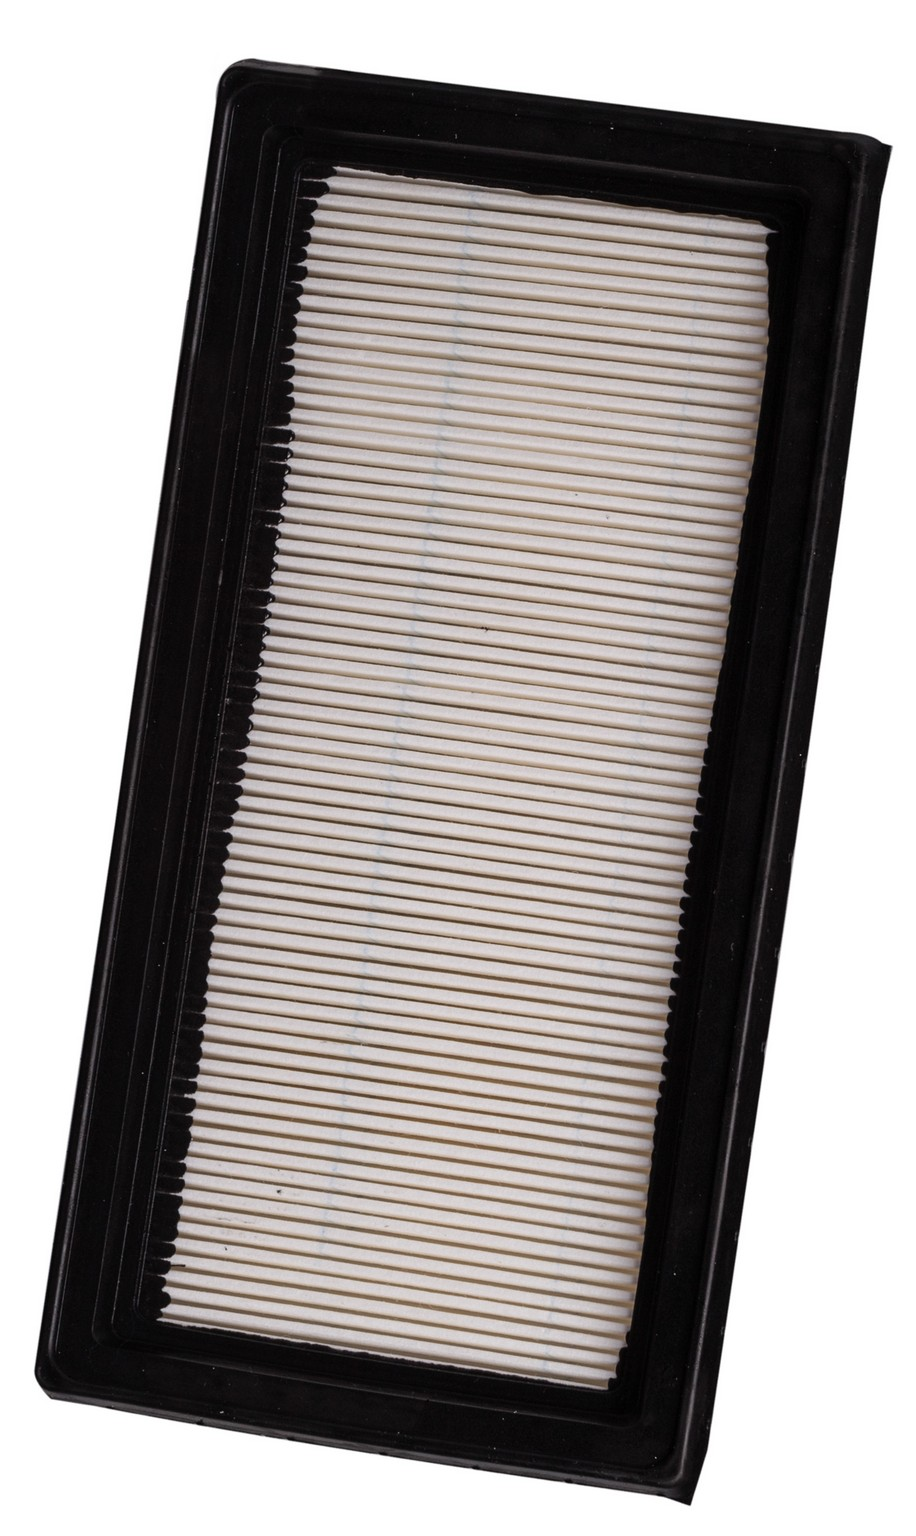 2013 Nissan Versa Air Filter PG PA6202